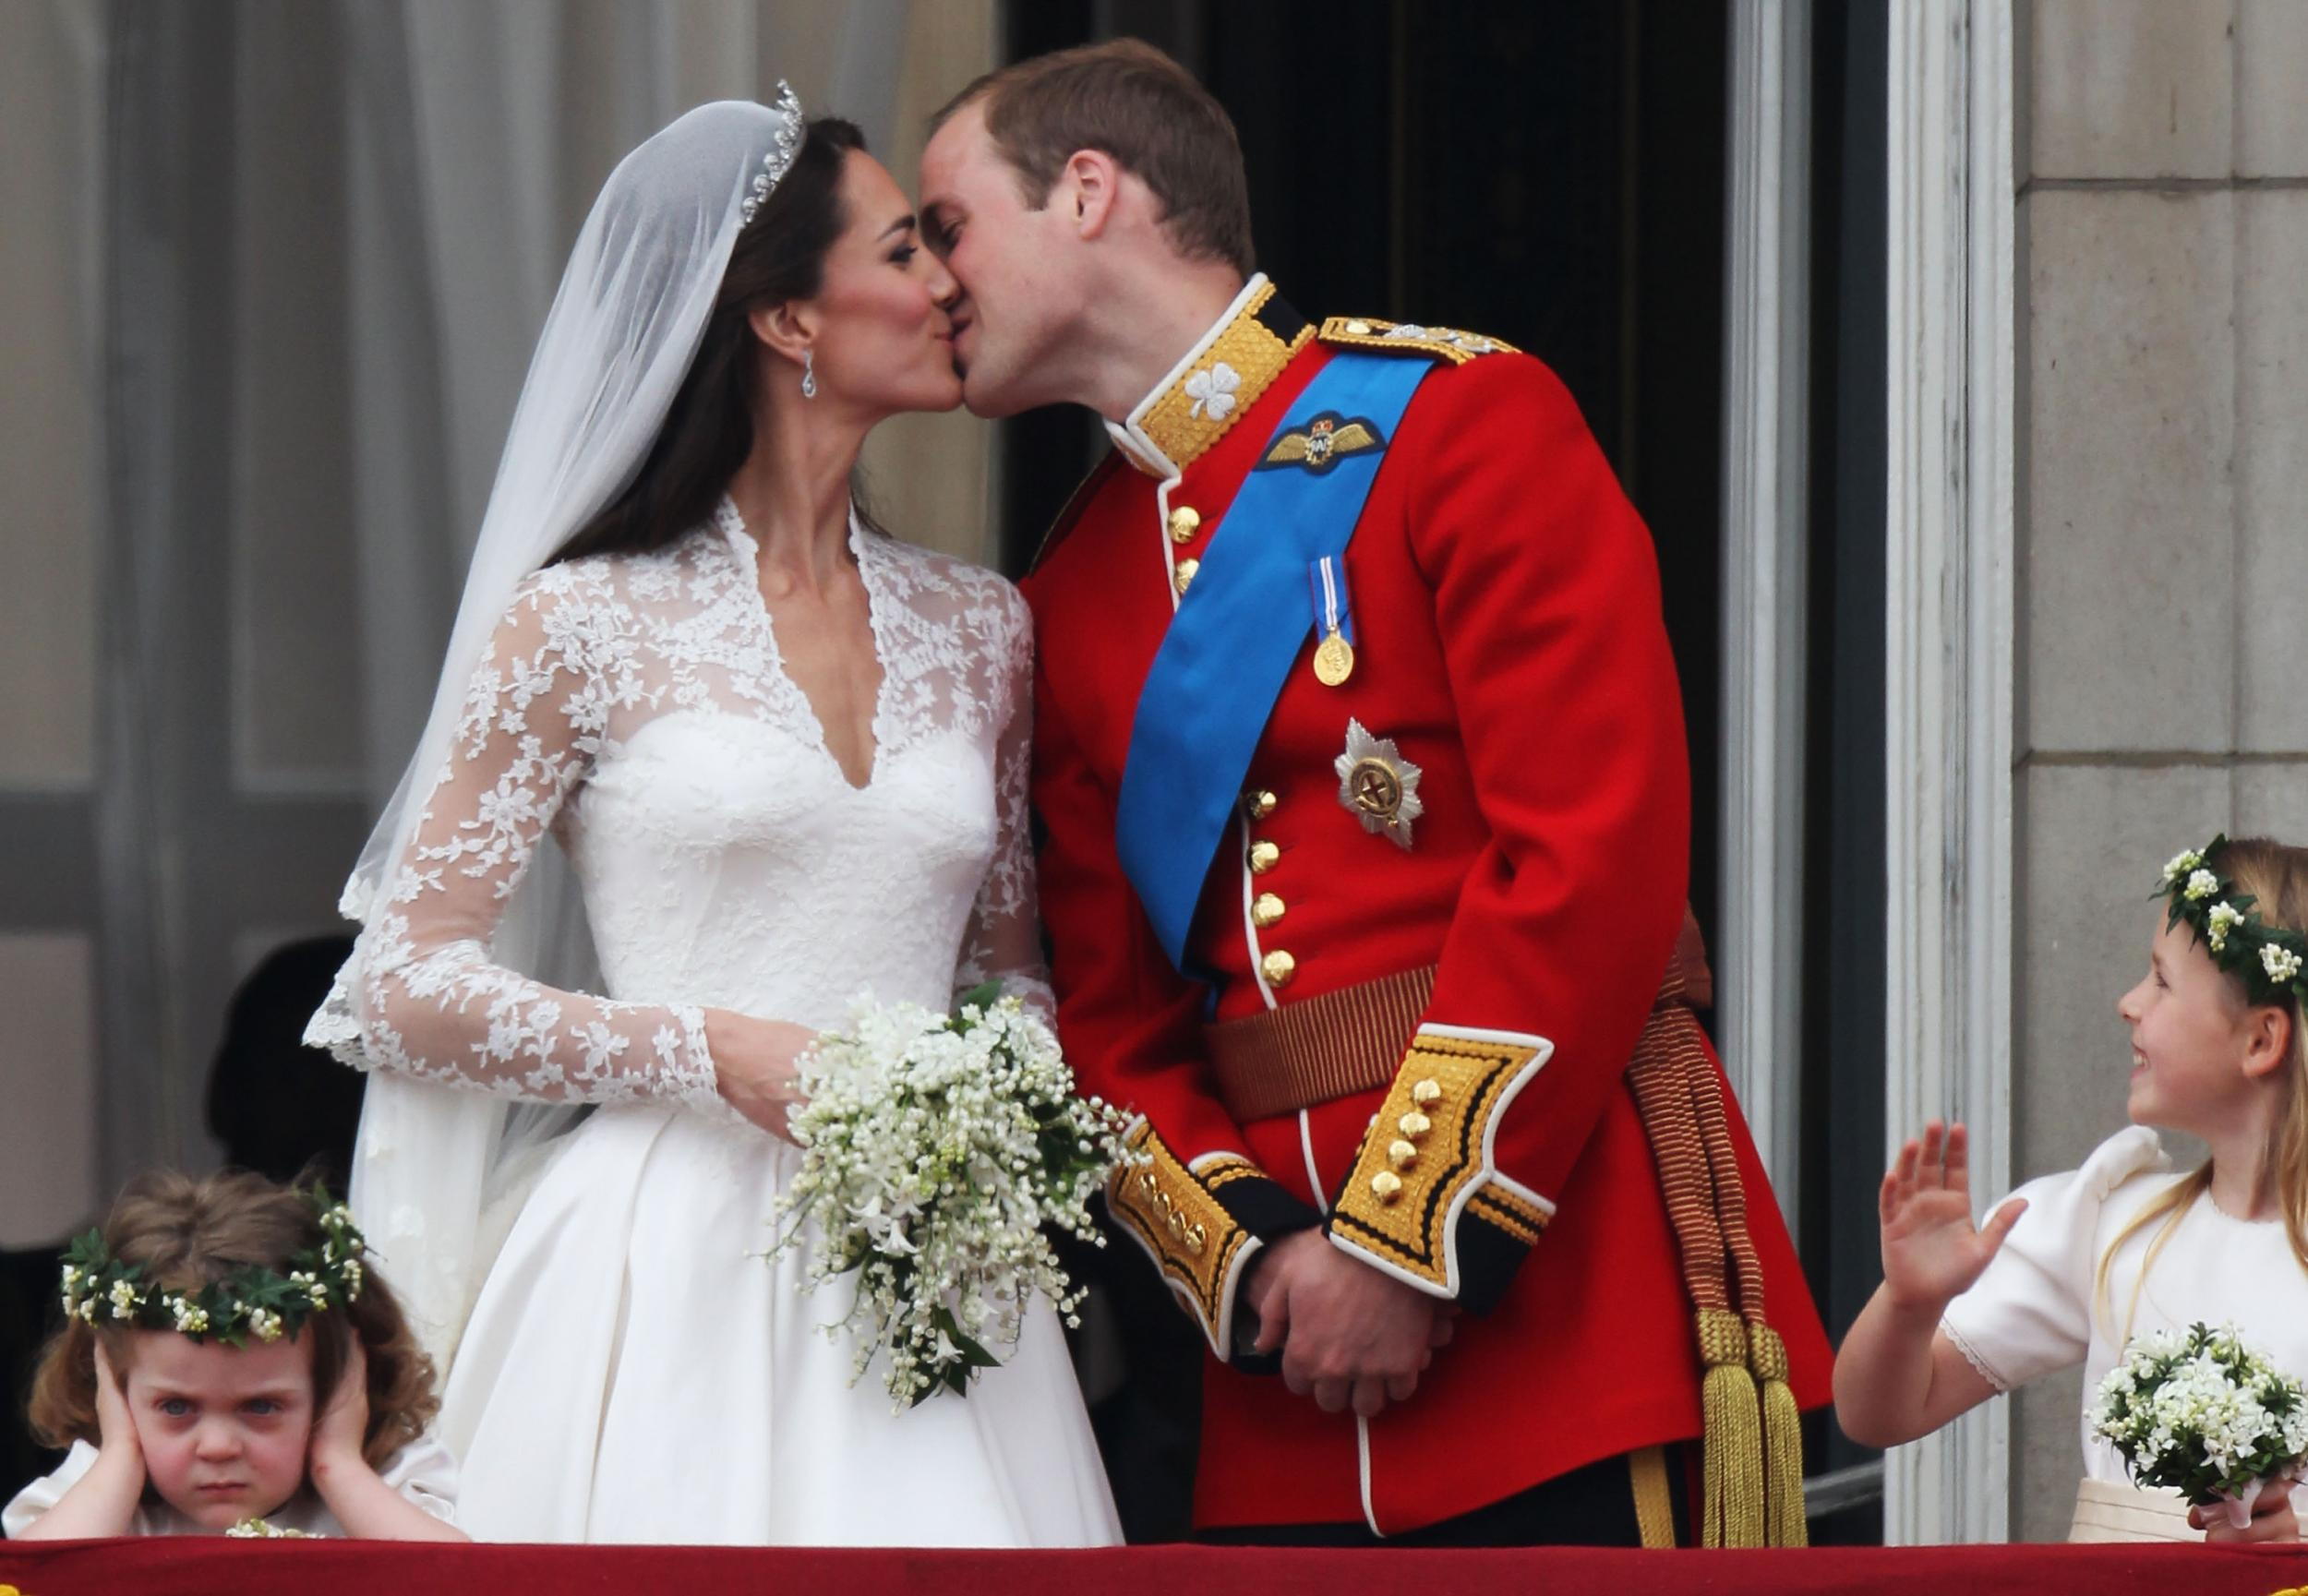 The Most Memorable Royal Wedding Moments From Fumbled Vows To